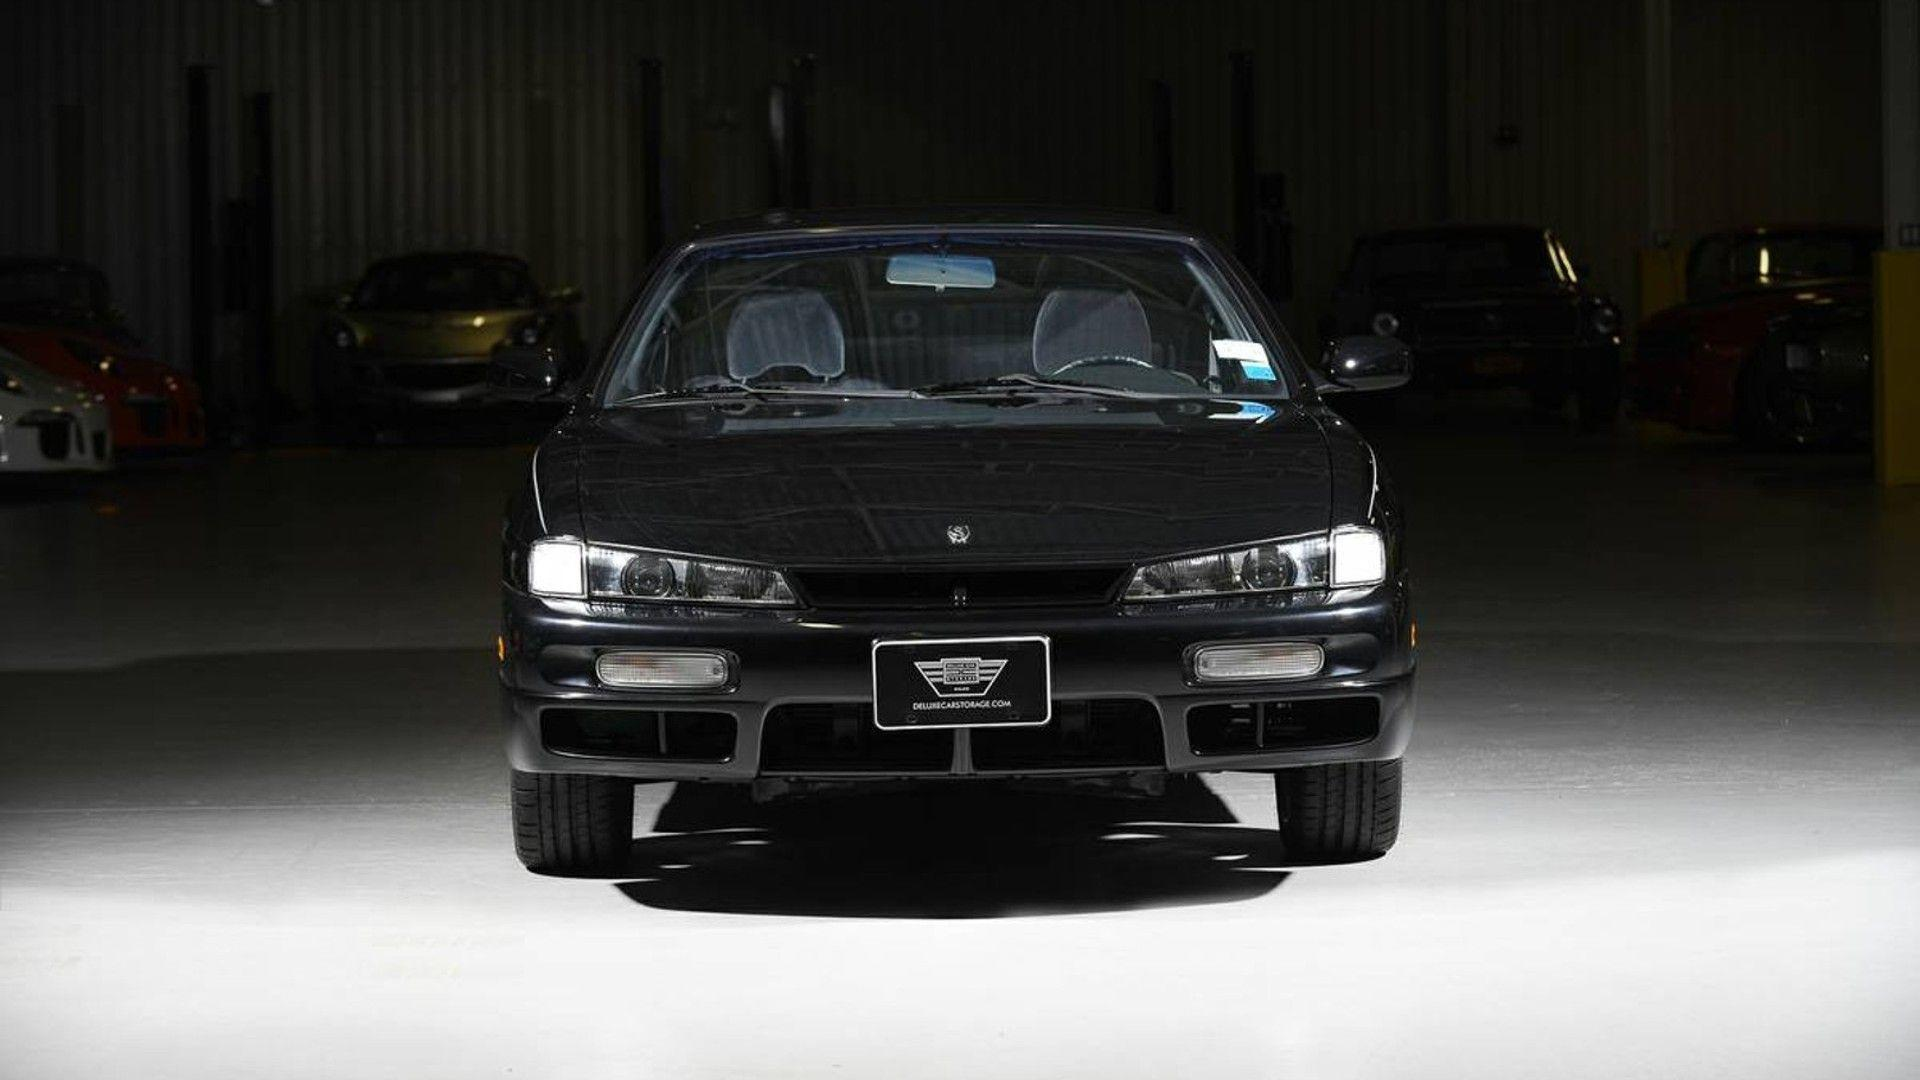 Seller Asks 100k For Pristine 1997 Nissan 240sx With Wild Story